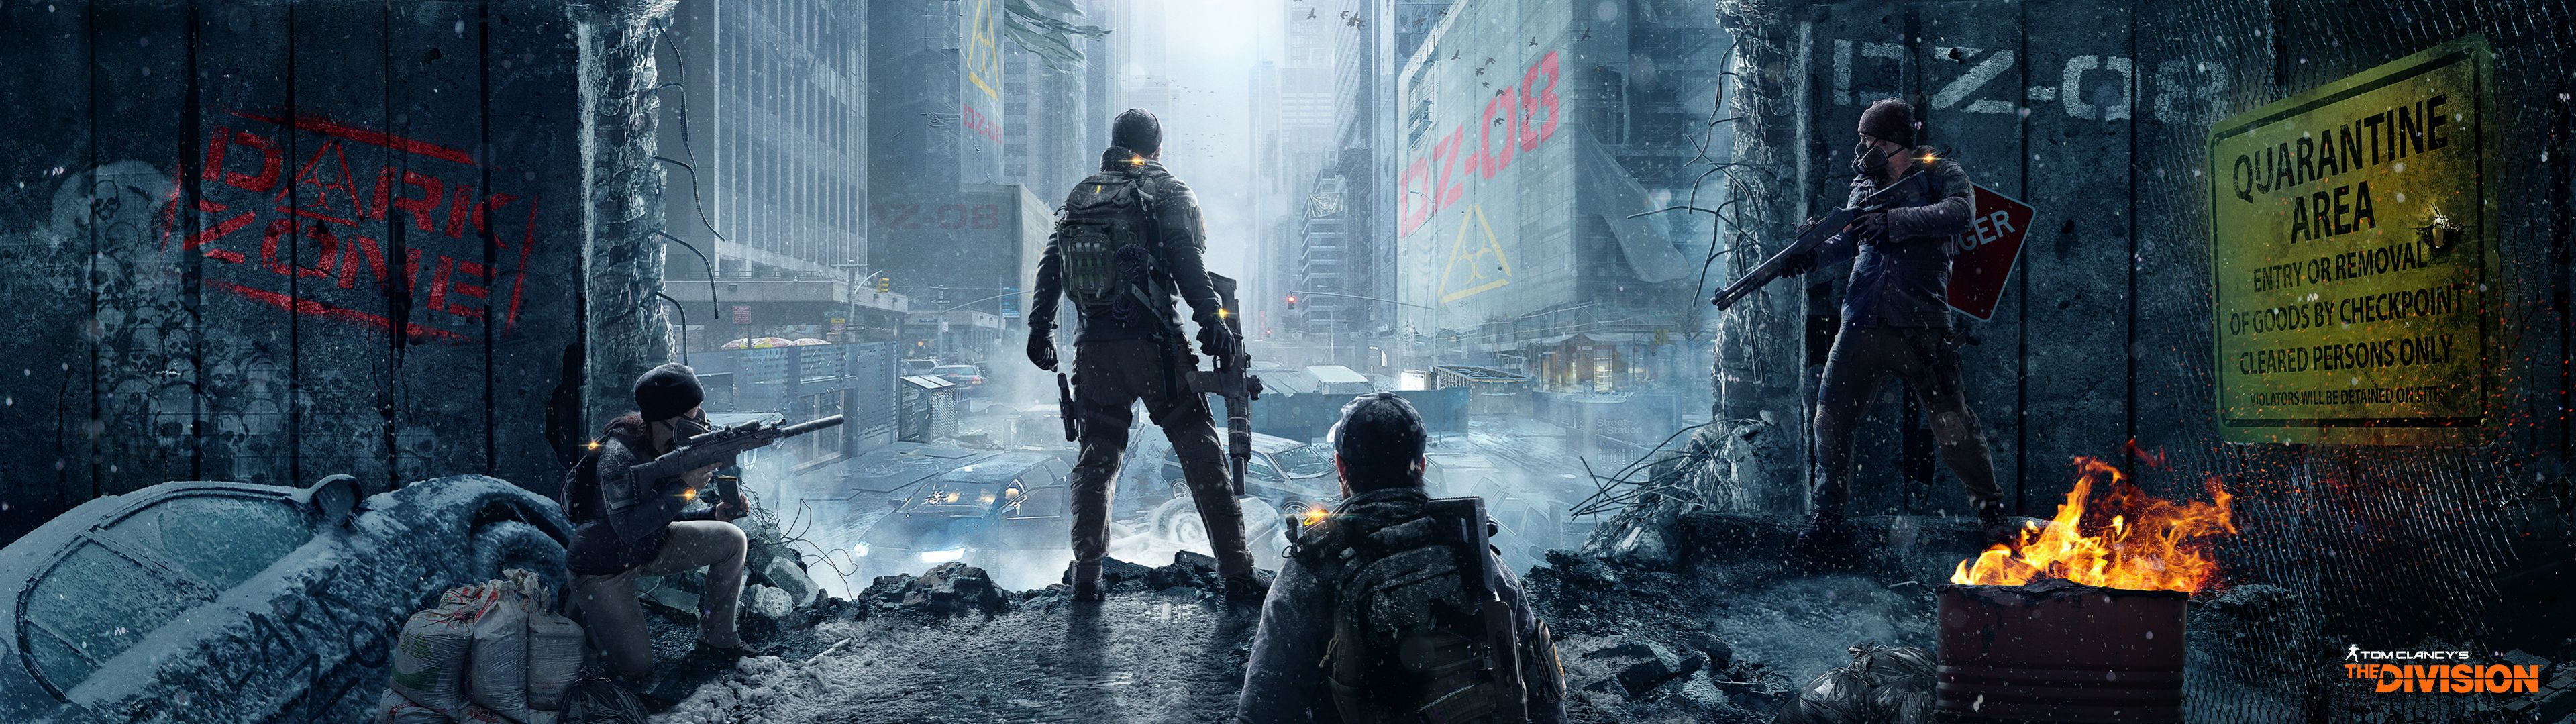 Fall Wallpaper Dual Monitor The Division Wallpapers Pictures Images